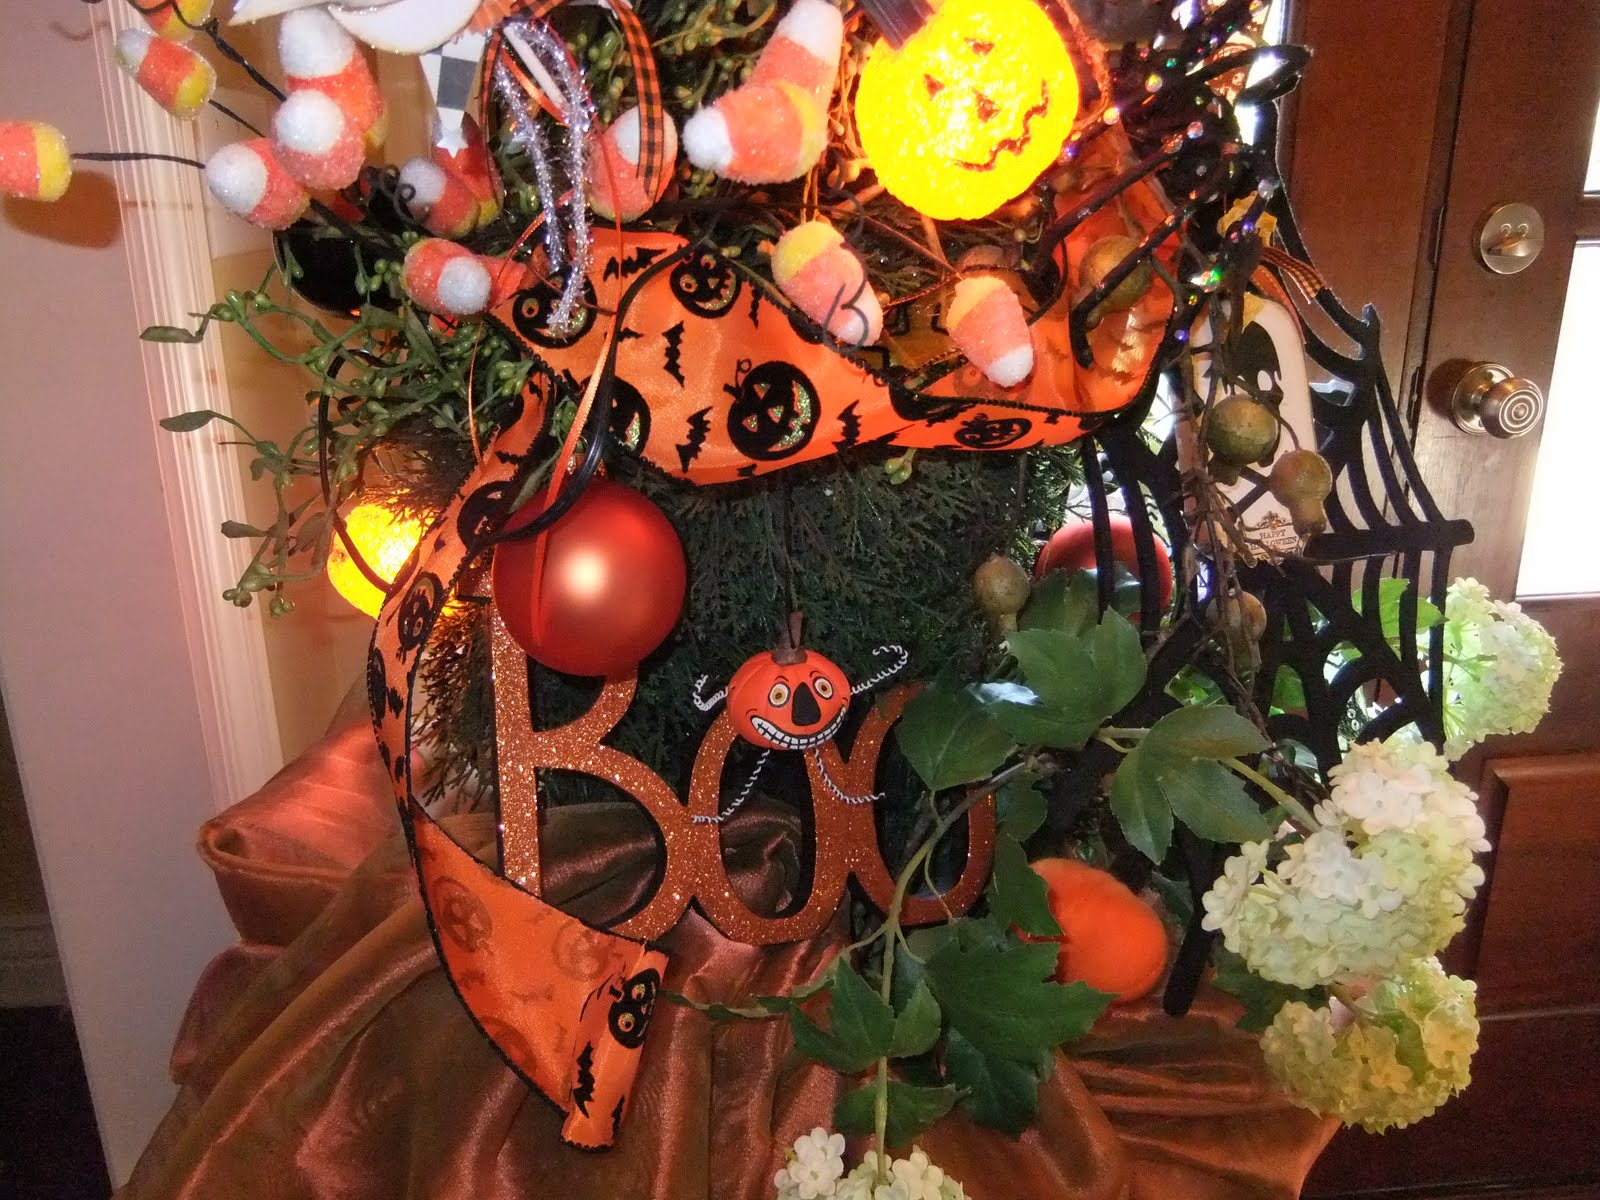 The Vintage Goose: My Halloween Decorations Indoors - My Halloween Decorations